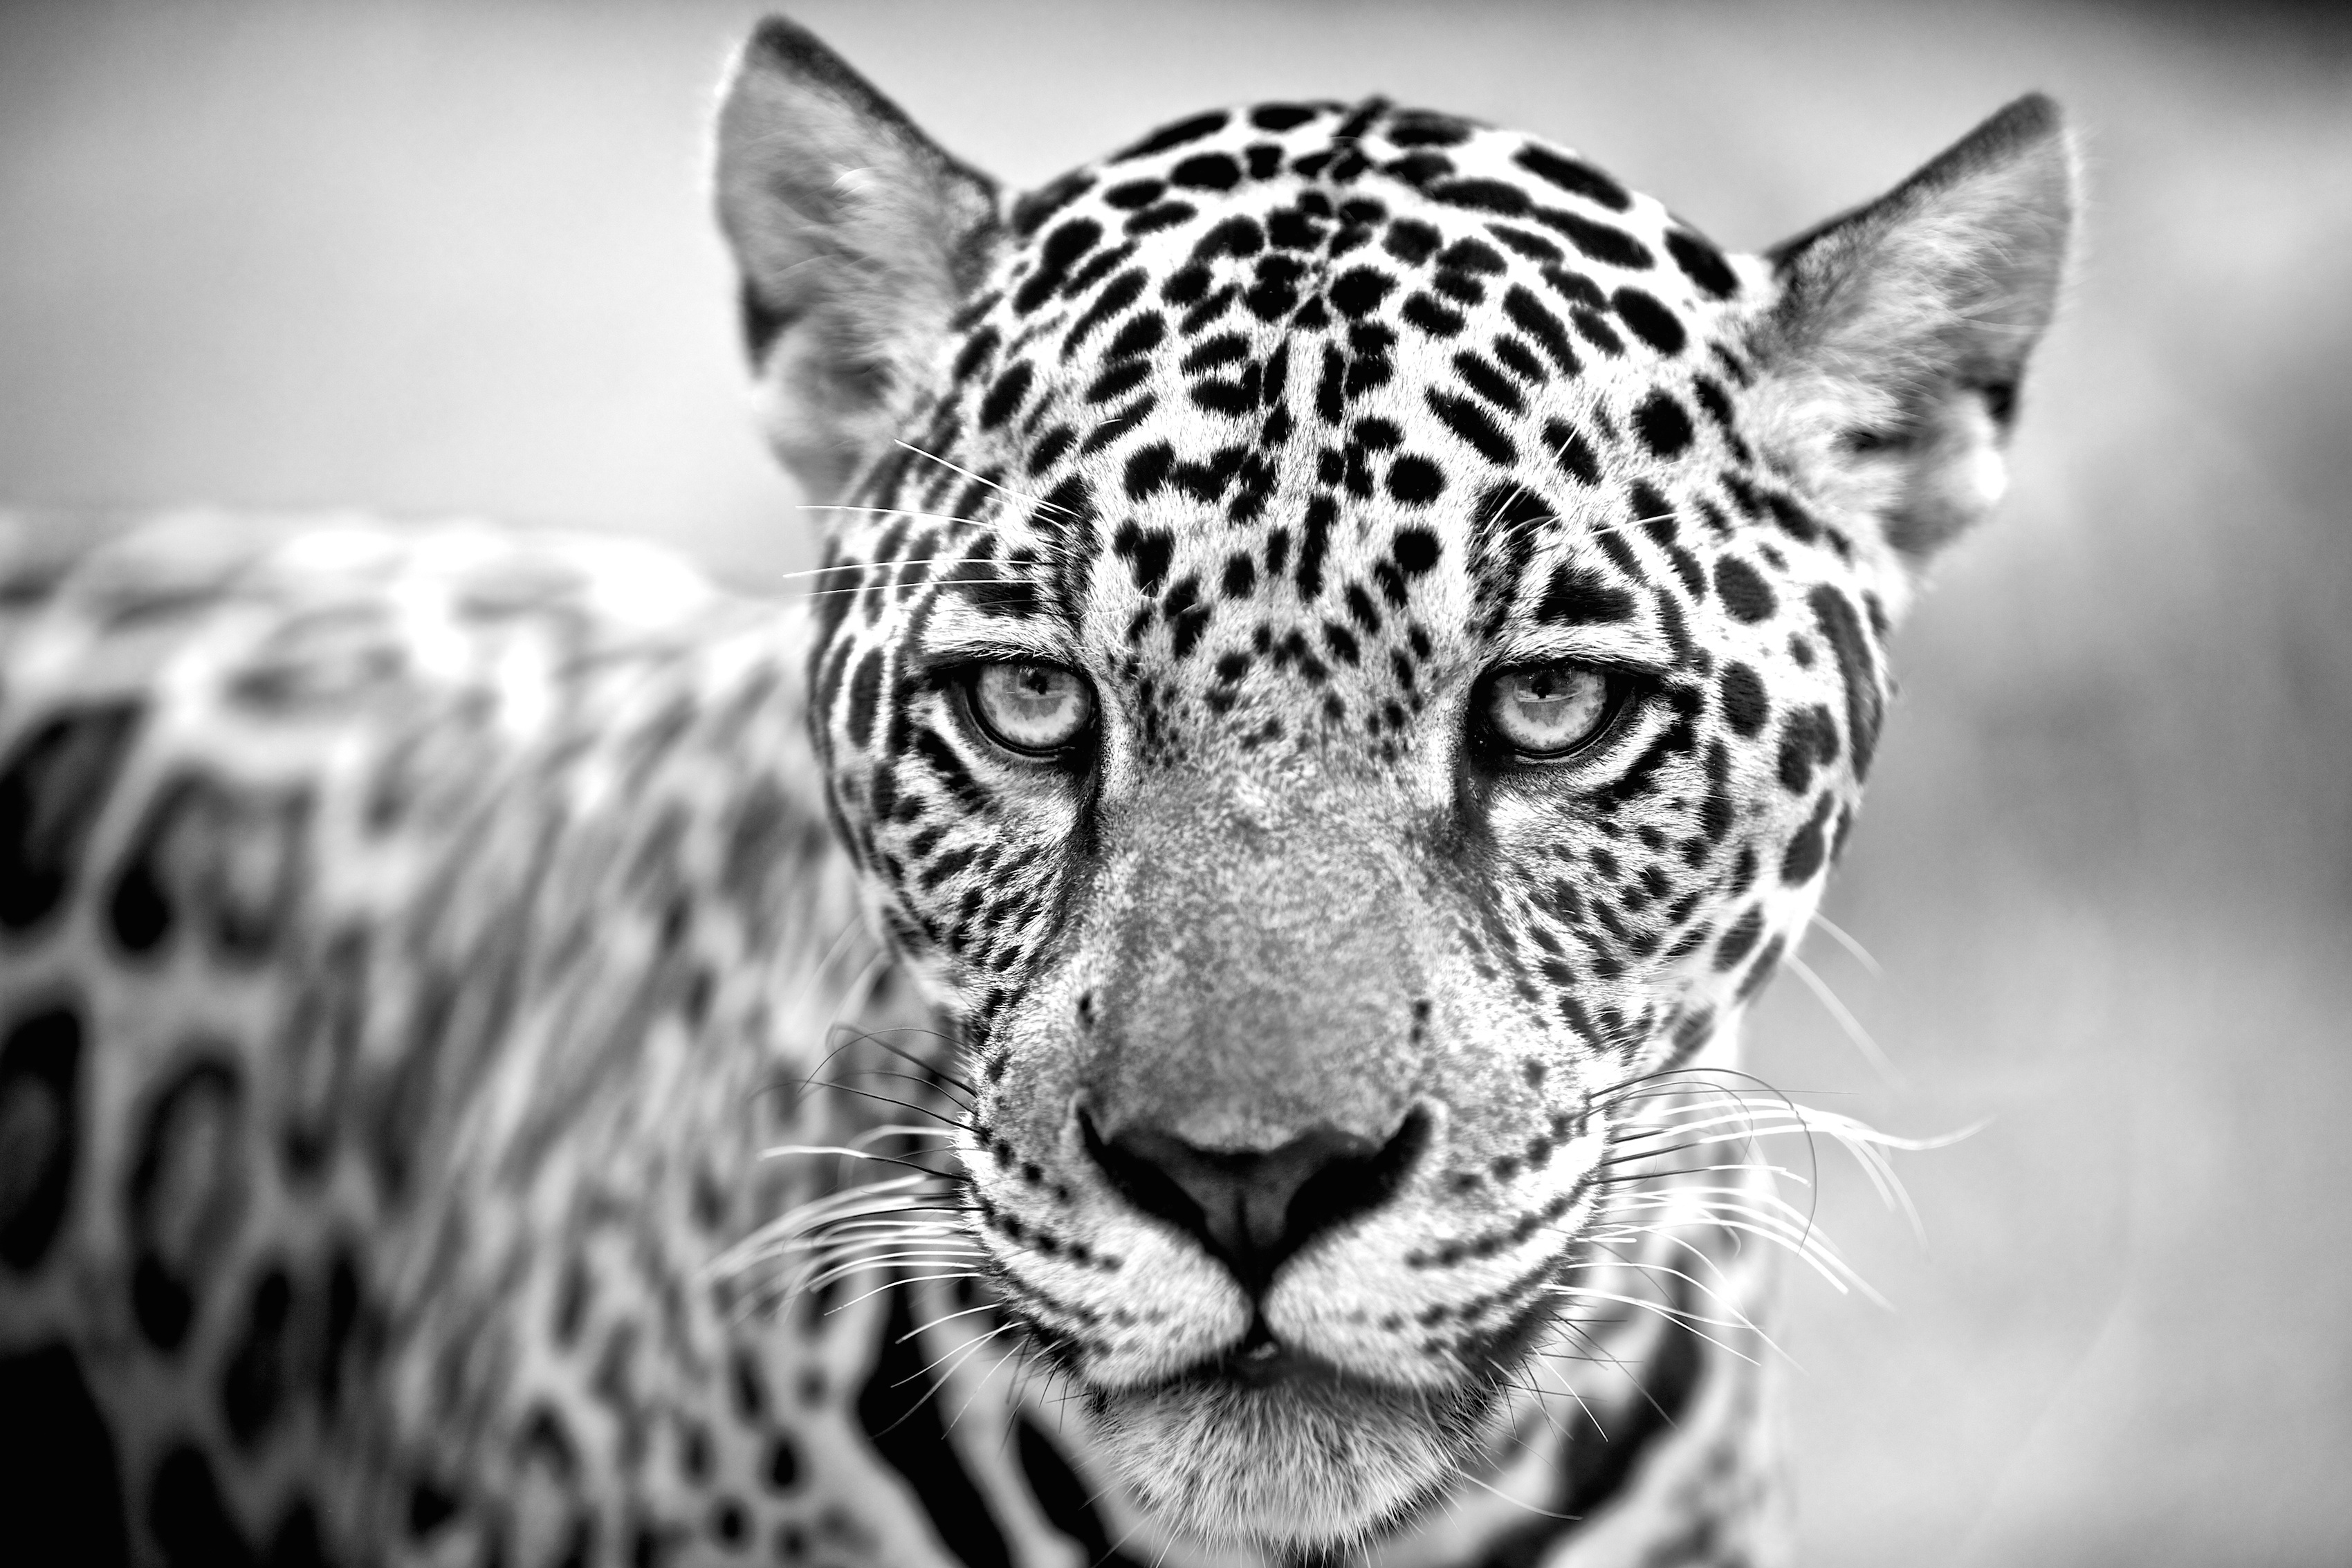 BrazilianJaguar